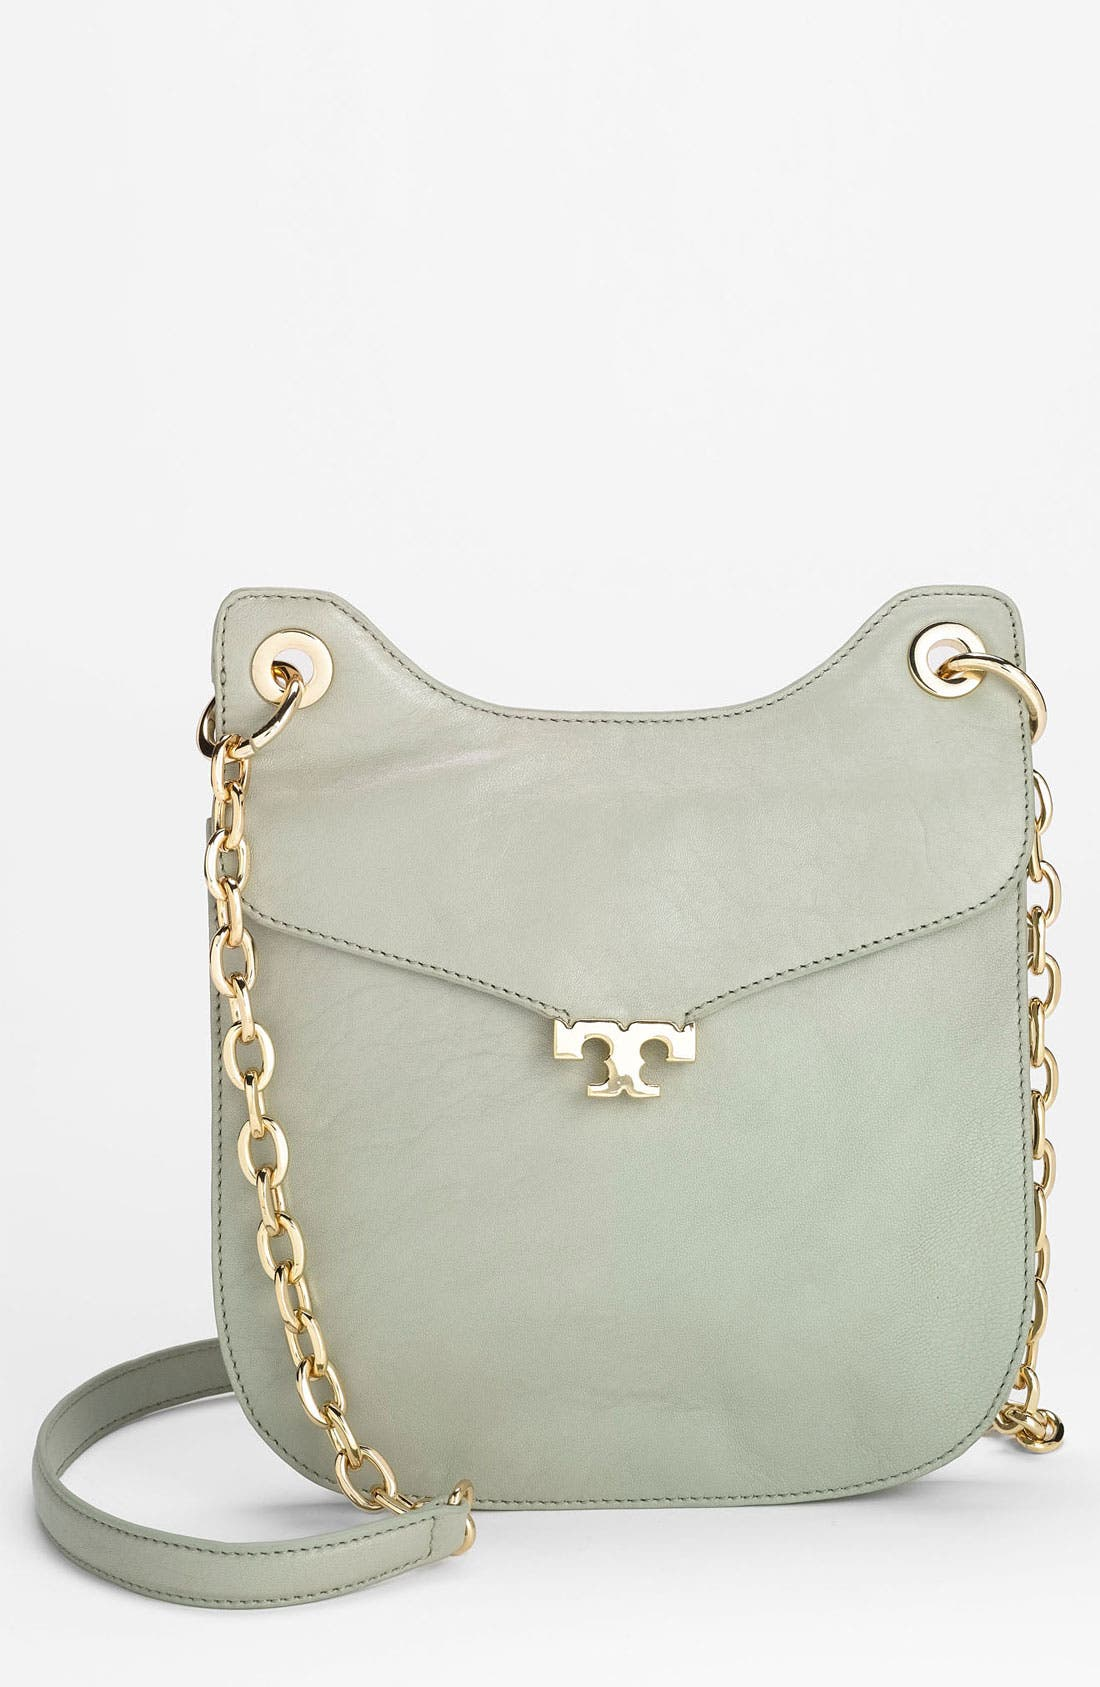 Main Image - Tory Burch 'Megan' Crossbody Bag